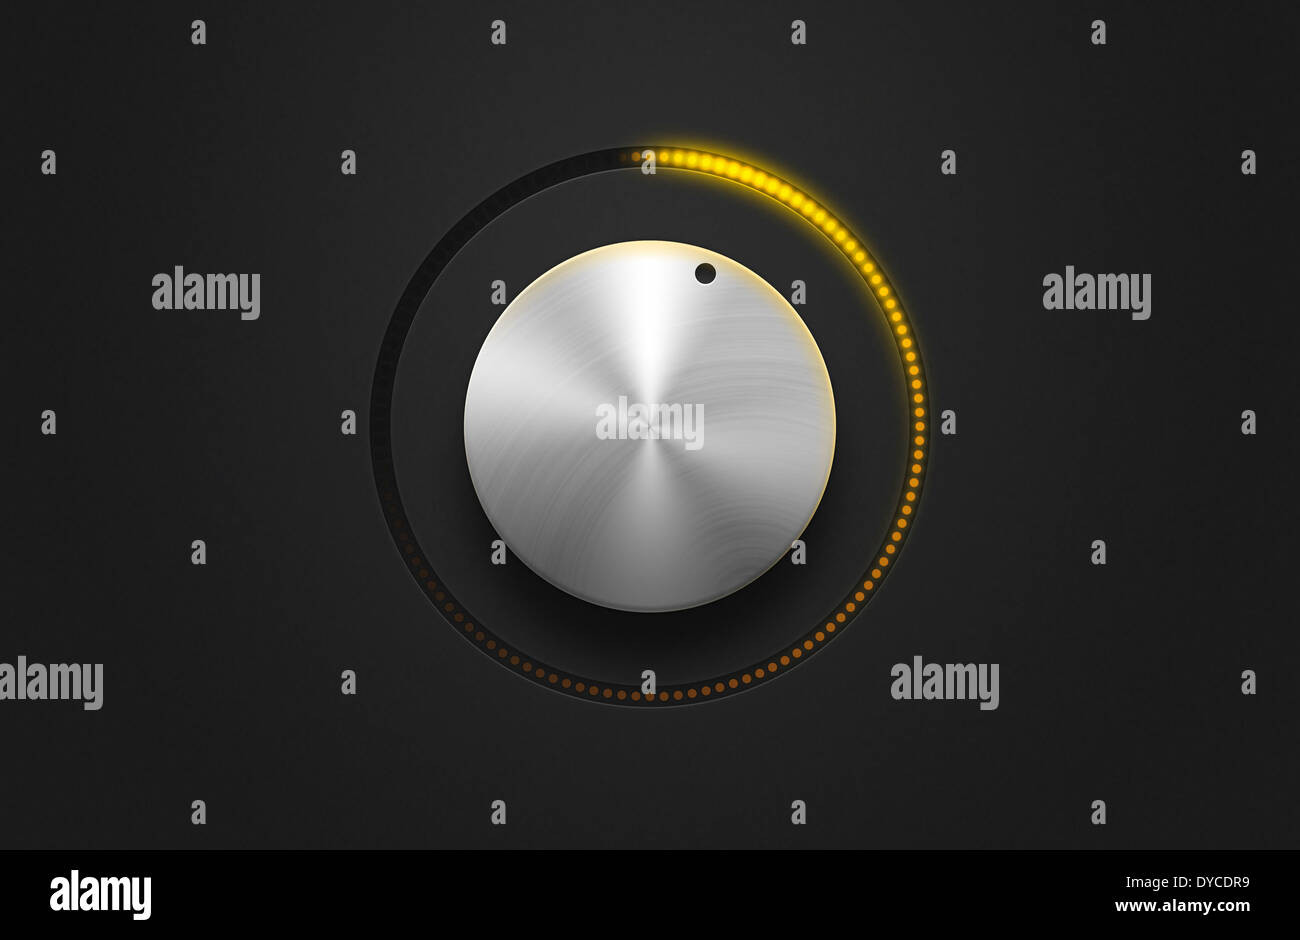 Volume Control Dial Stock Photos Images Knob Illustration A Silver With Lights Image